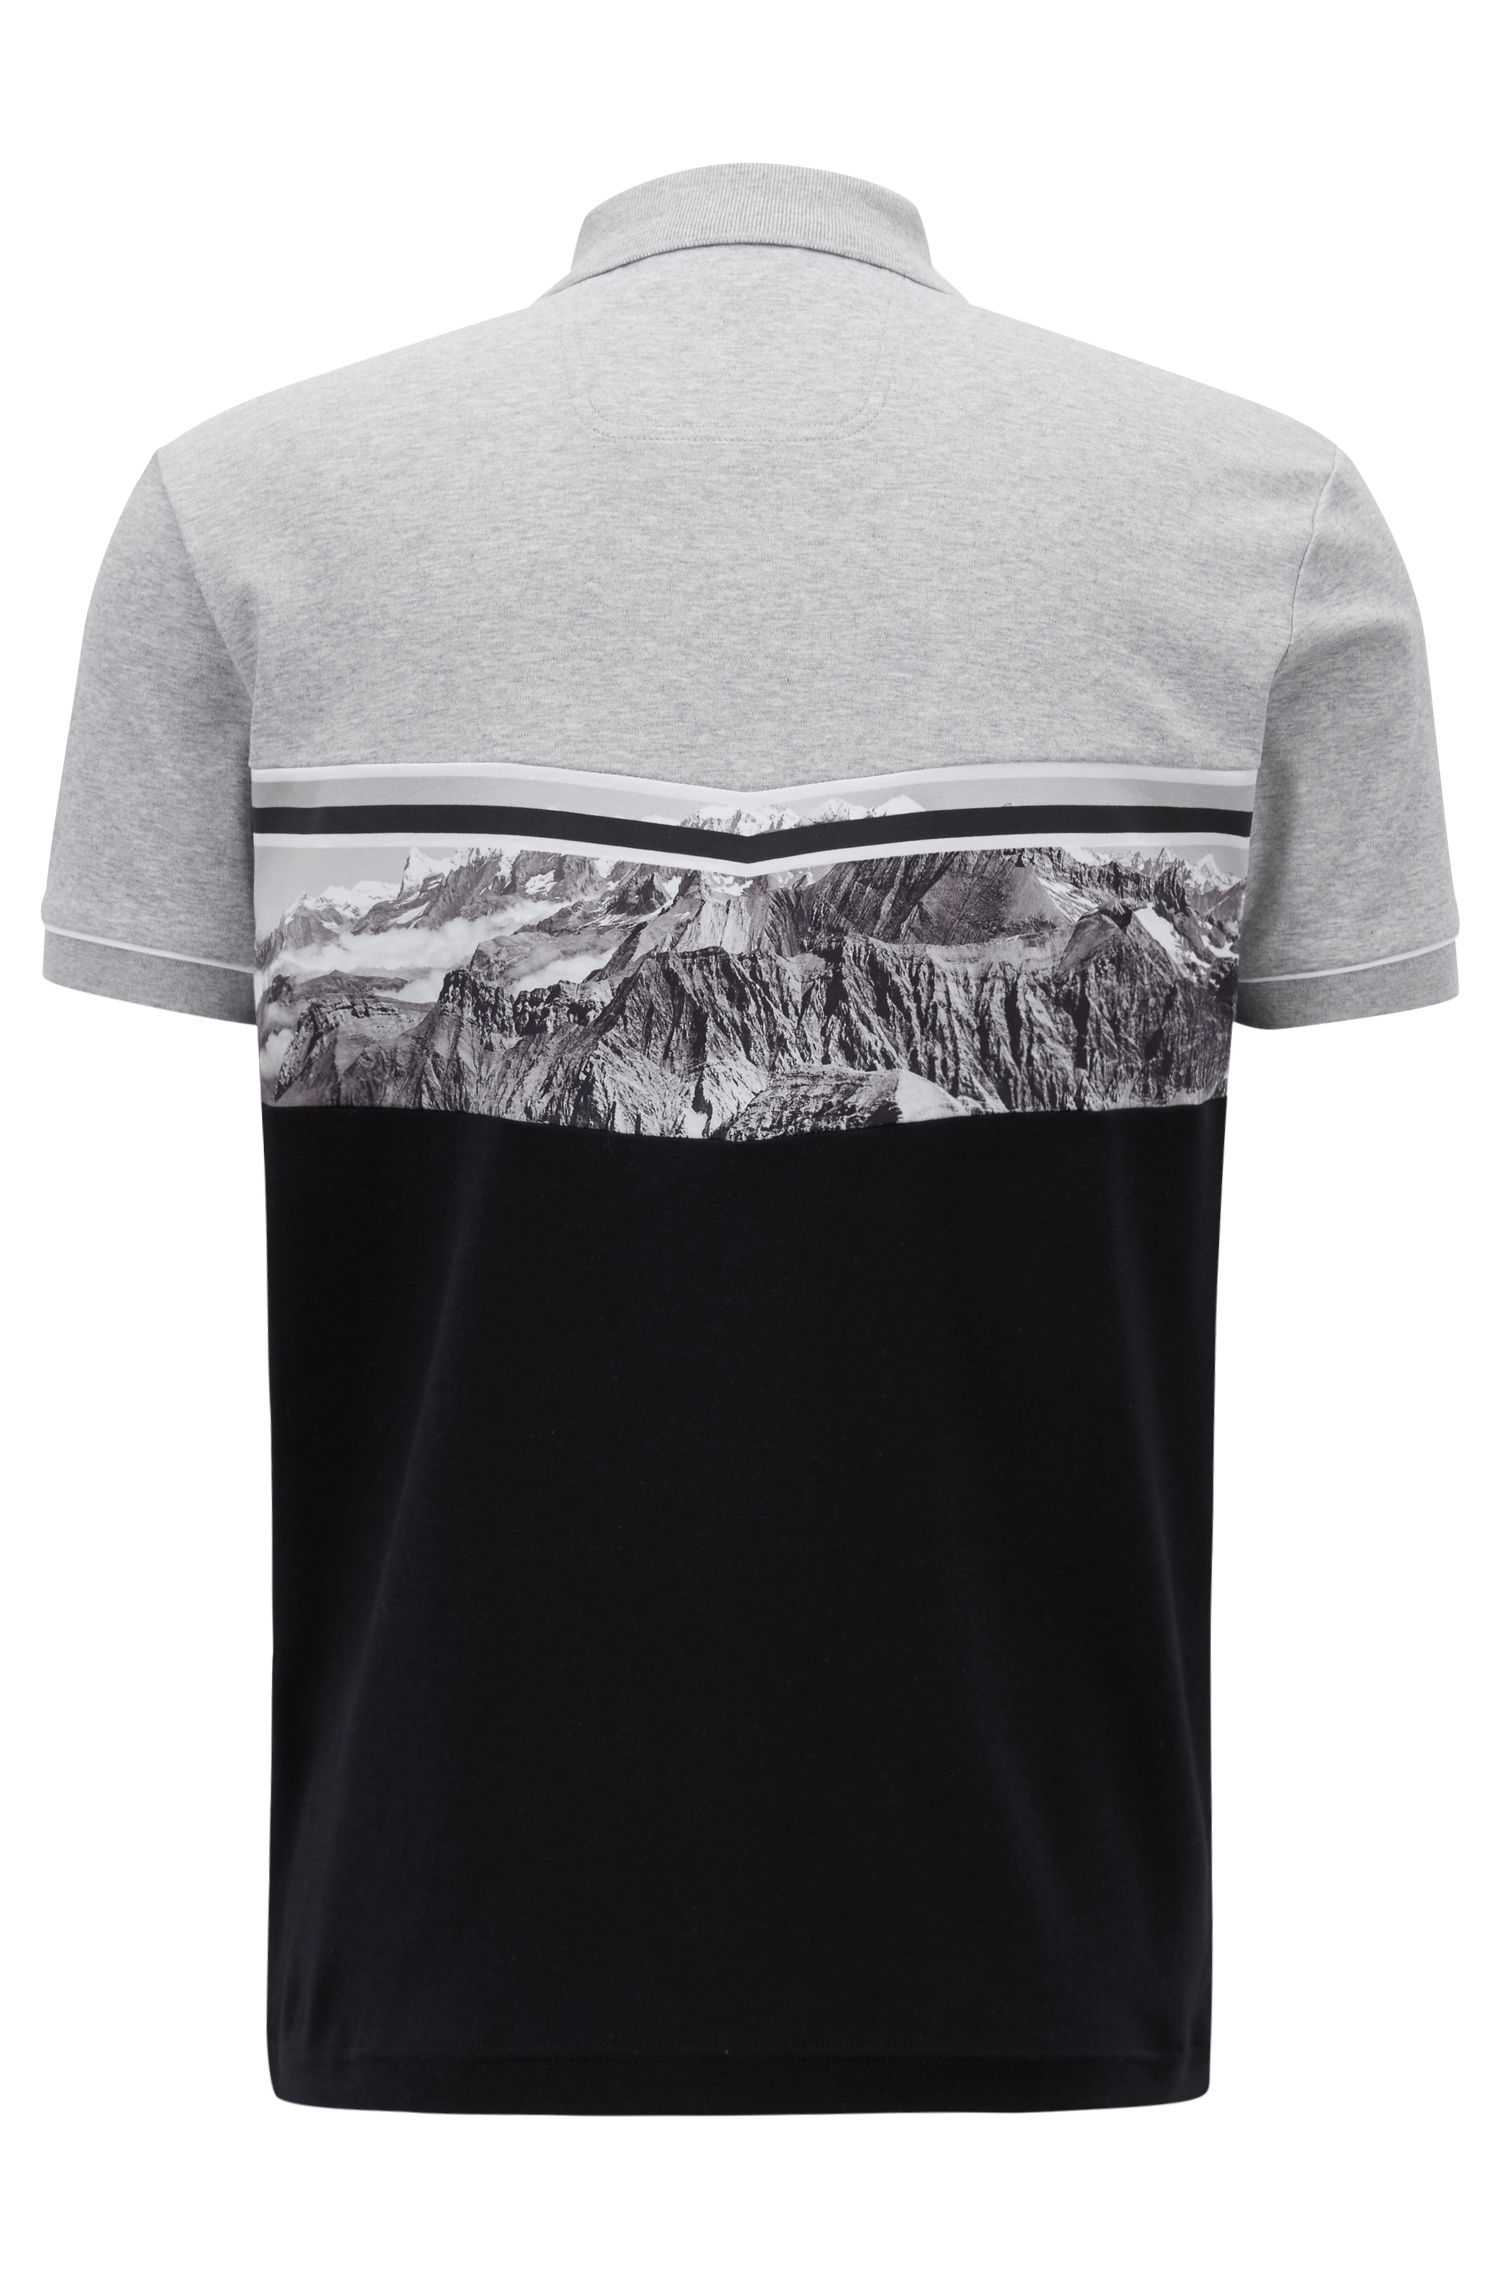 Color-block polo shirt with rear photographic landscape print, Black